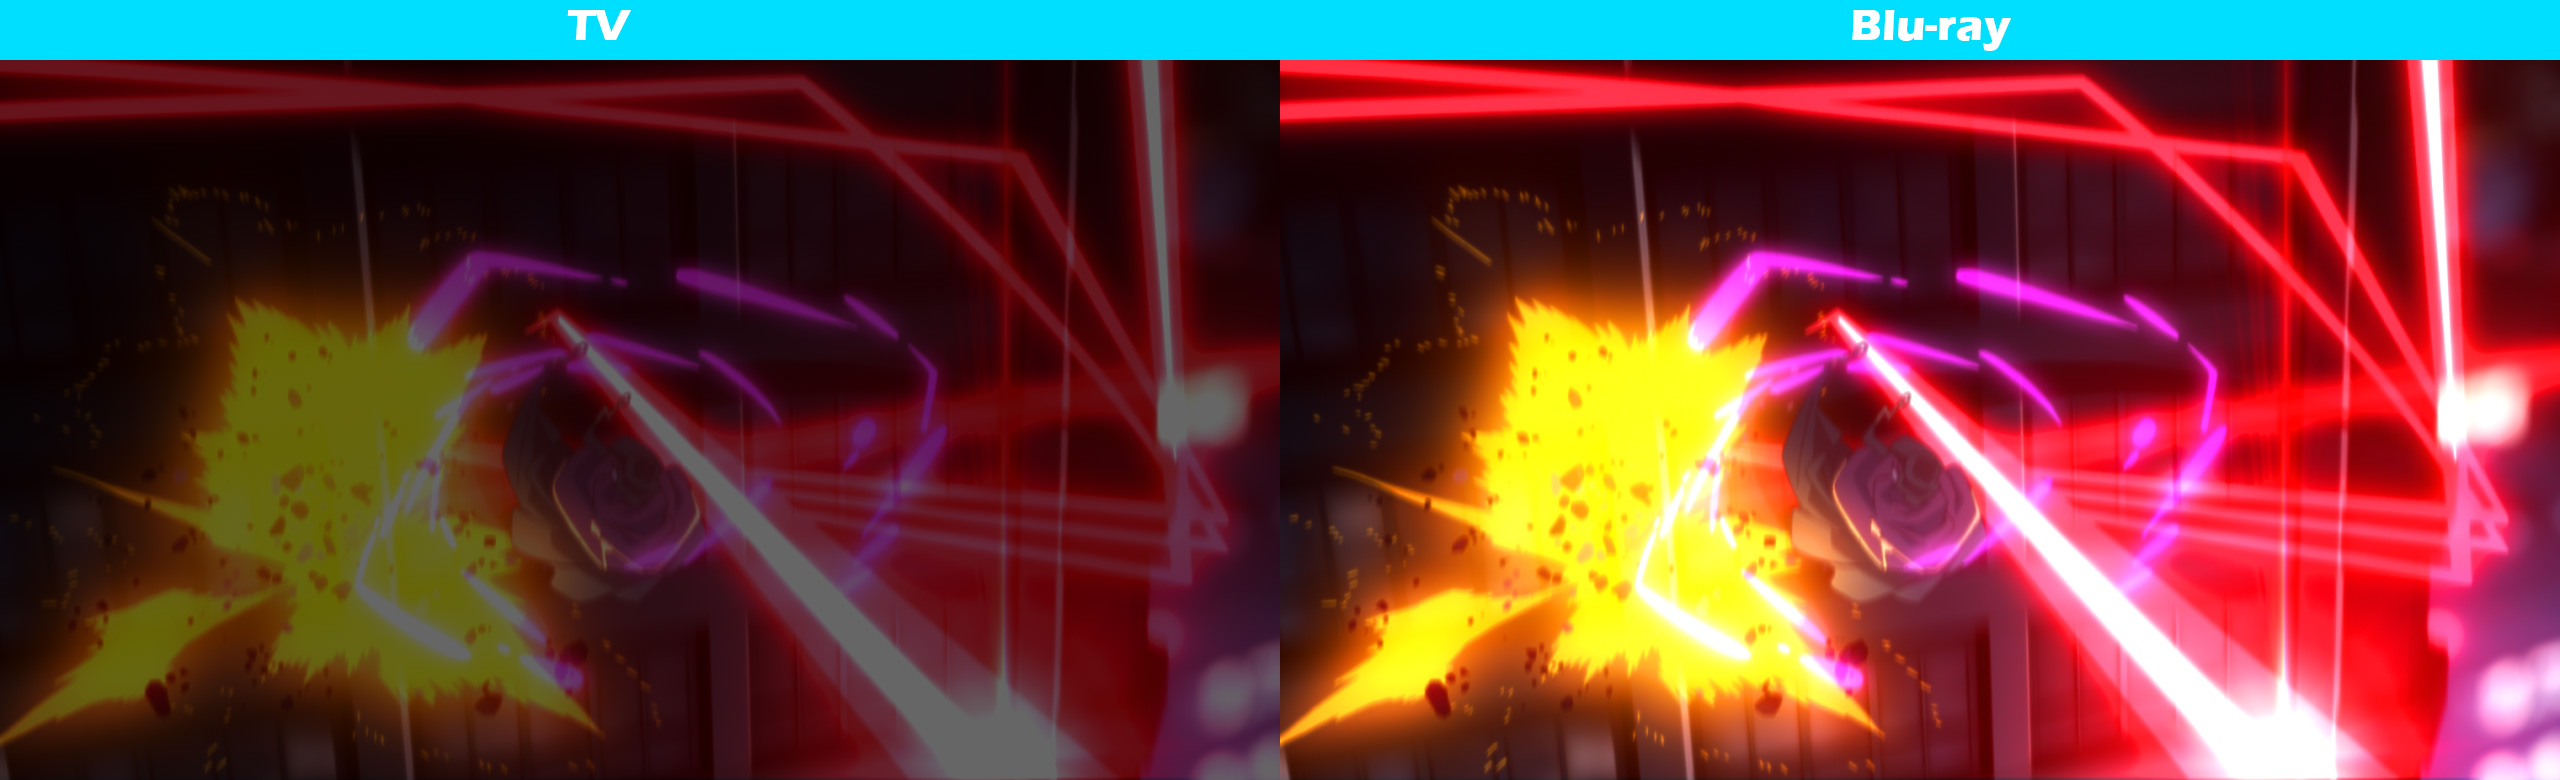 Fate-stay-night-Unlimited-Blade-Works_Haruhichan.com-TV-vs-Blu-ray-Preview-1